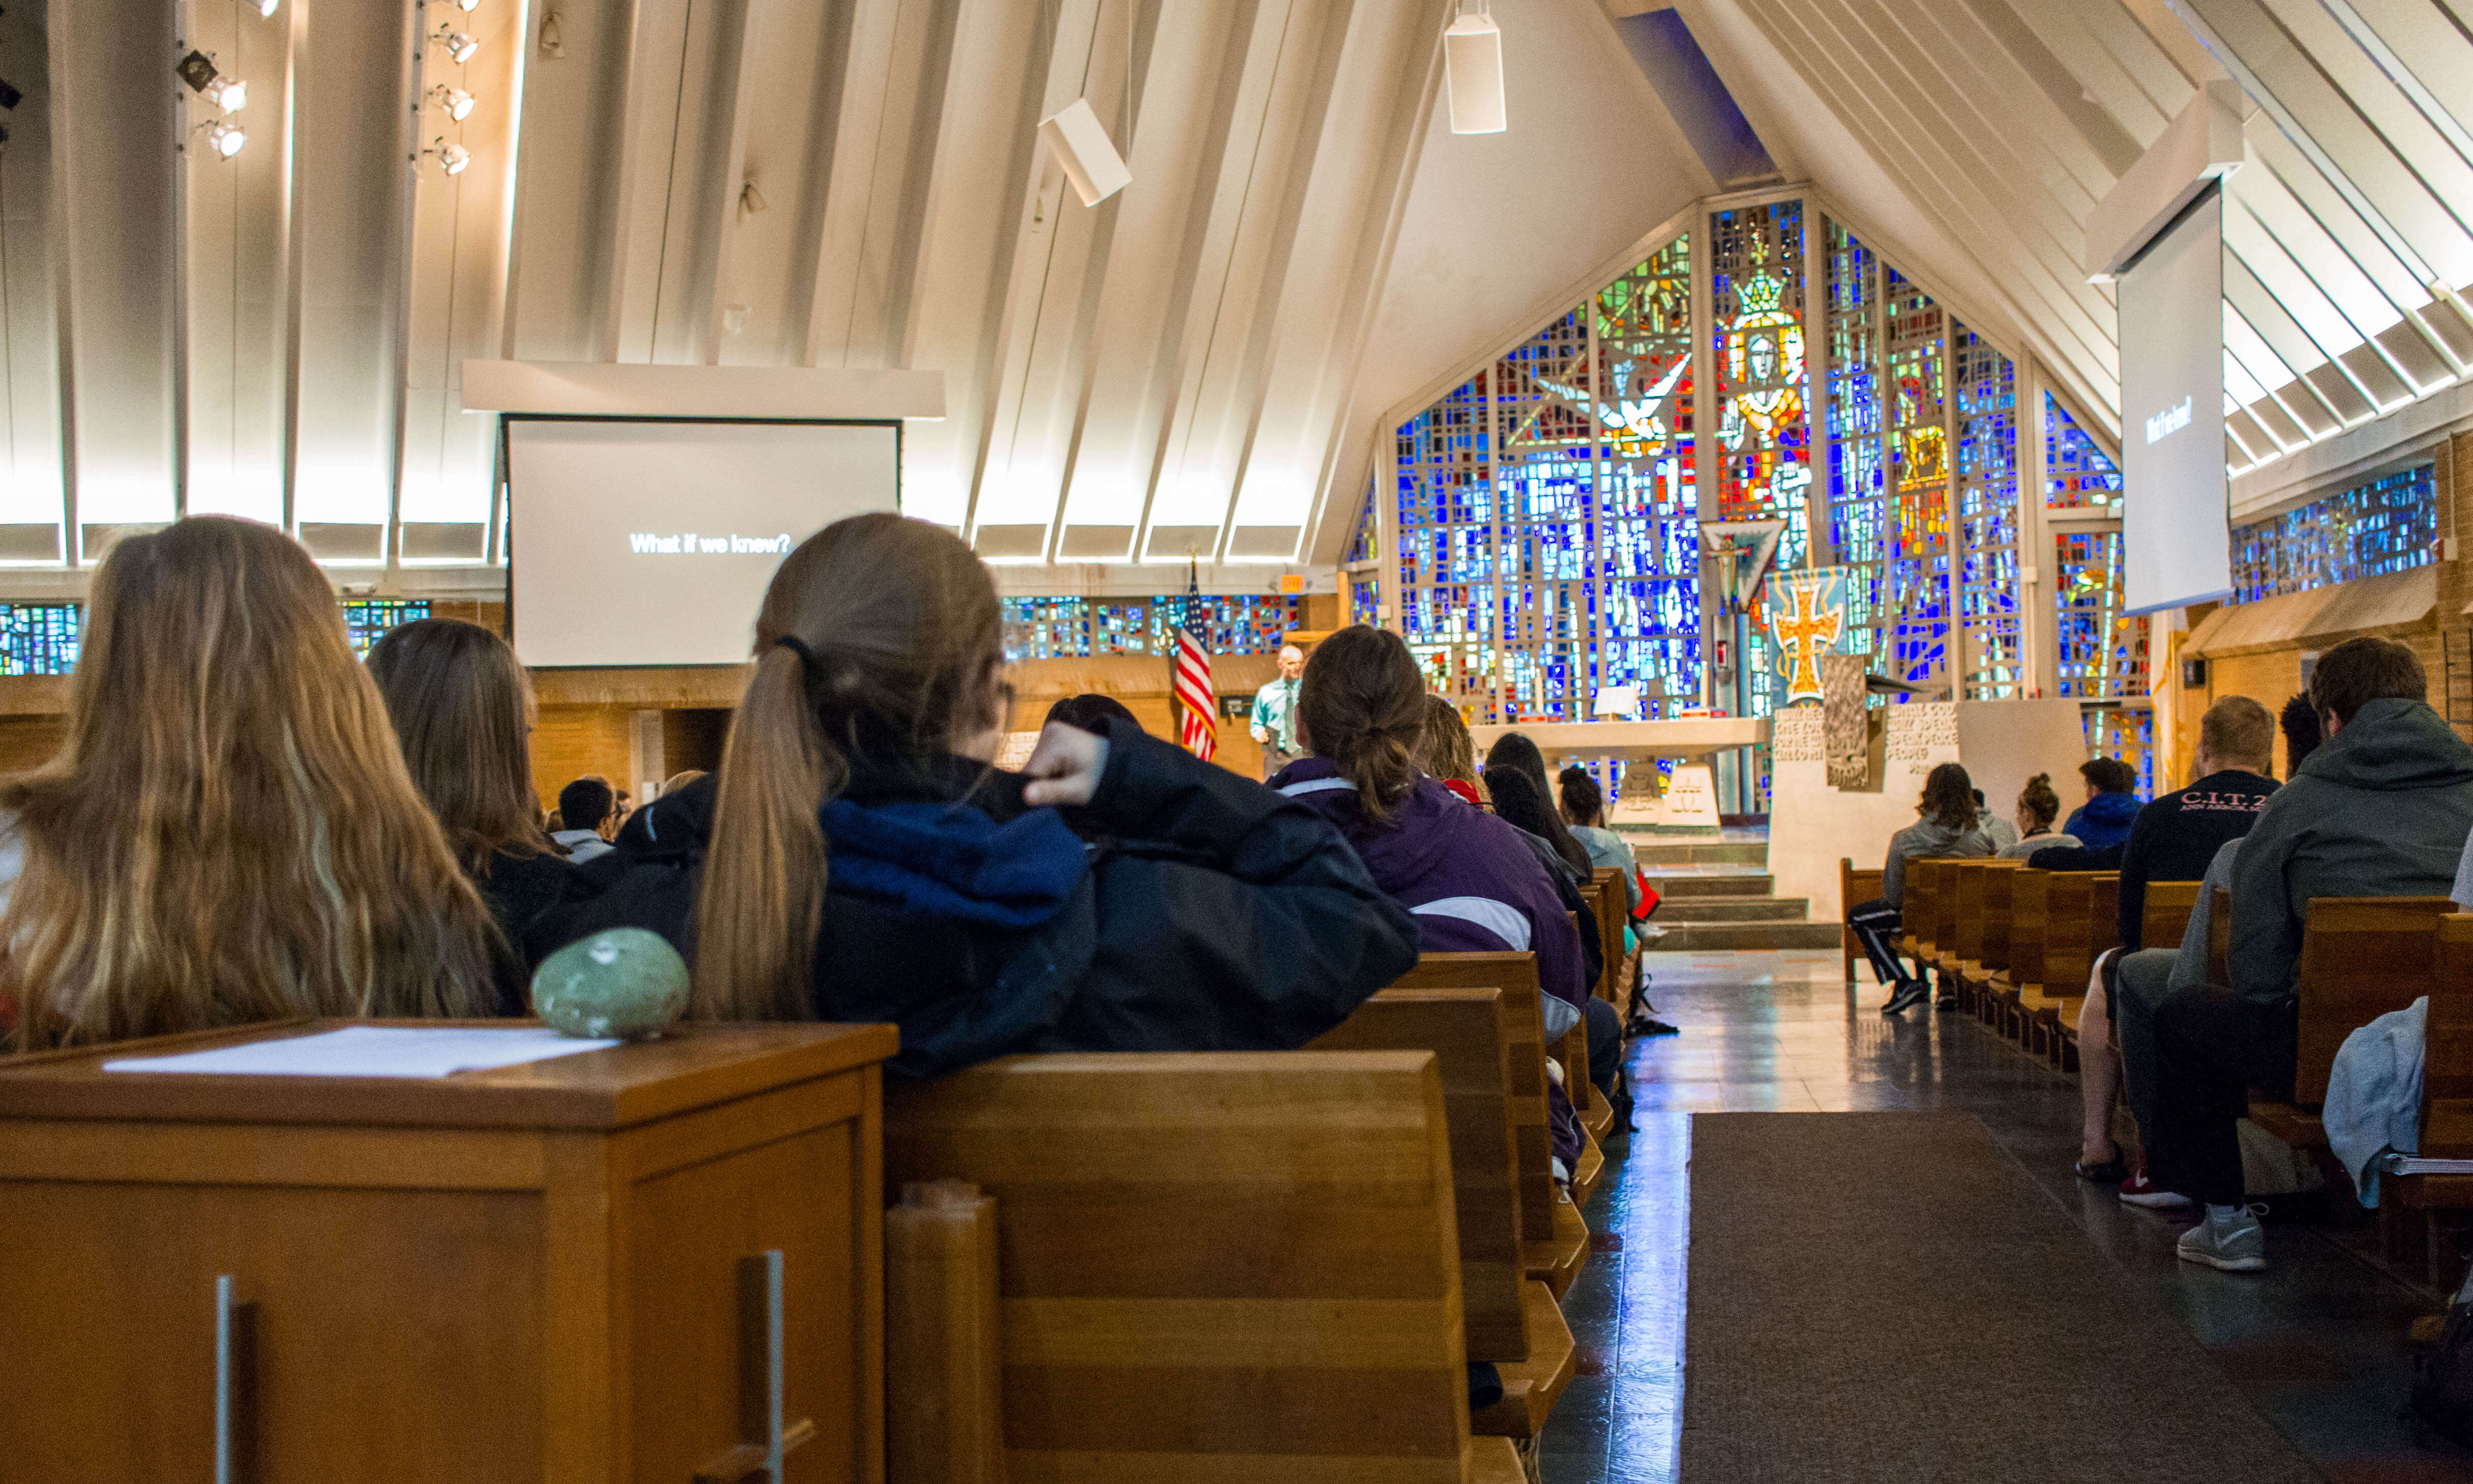 5 ways to get involved in spiritual community on campus